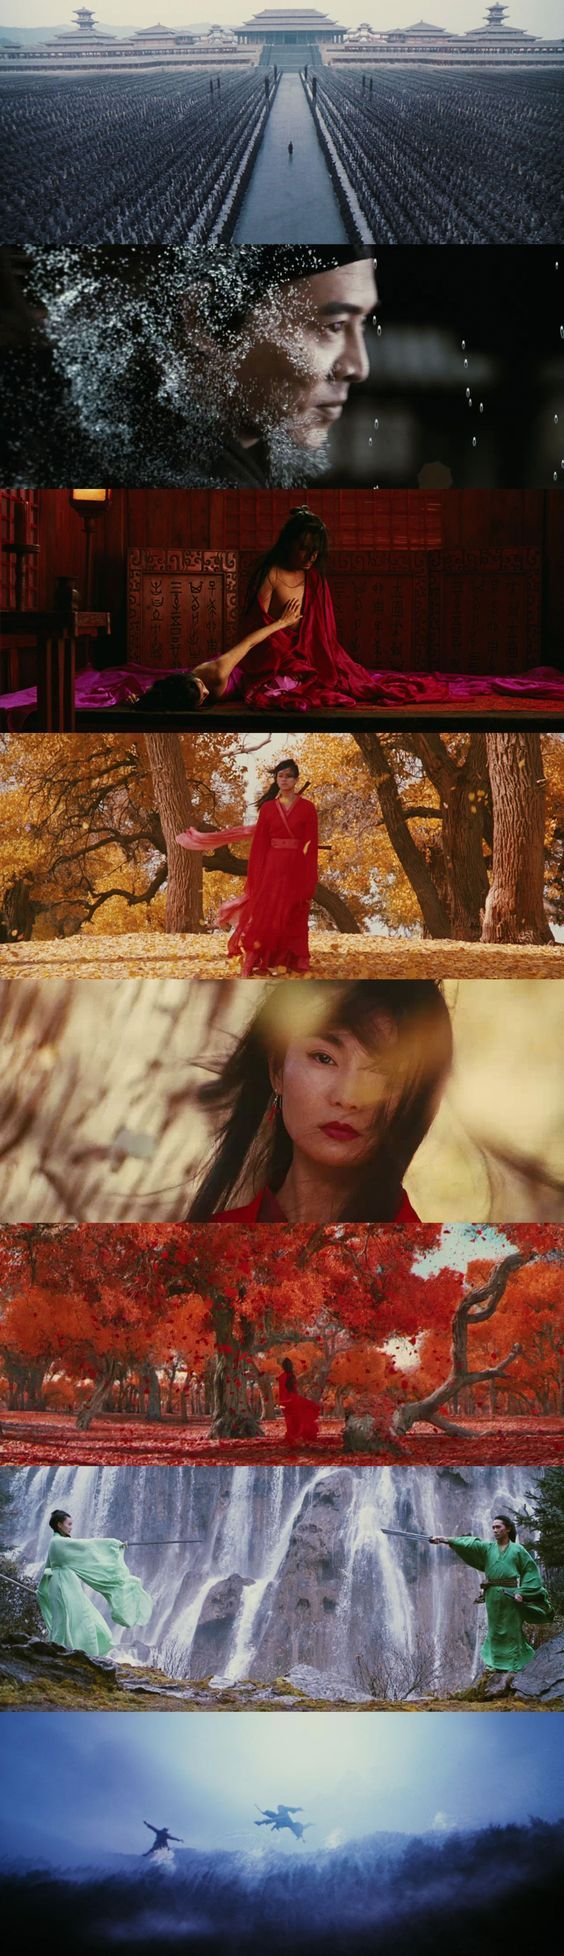 'Hero' (Yimou Zhang, 2002) DoP: Christopher Doyle: